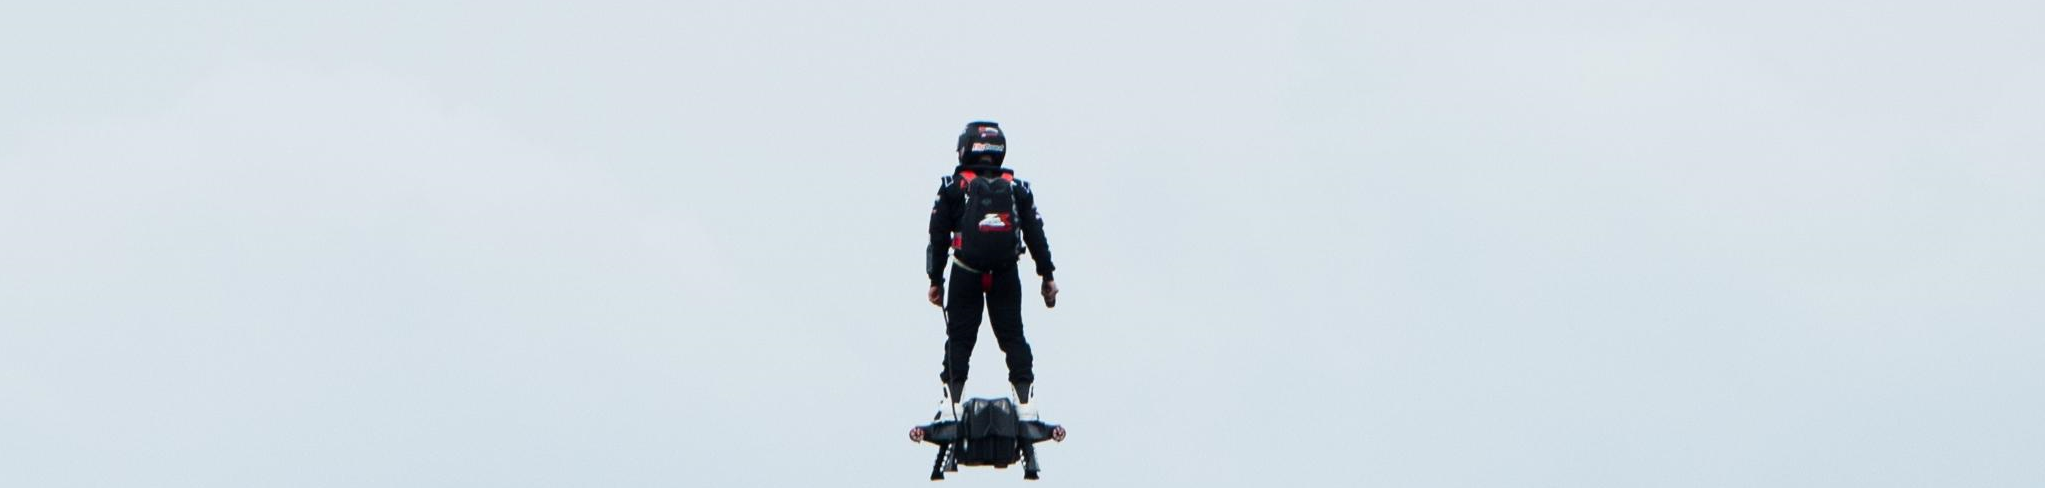 "French jet ski champion Franky Zapata, has set a new Guinness World Record for the farthest hoverboard flight smashing the old record by over 6,000 feet. This event took place over the weekend off the coast of Sausset-les-Pins in the South of France.  Zapata was able to negotiate his hoverboard off of land and over the water for a total distance of 7,388 feet. This smashes the previous record of 905 feet set by Canadian inventor Calalin Duru late last year. Zapata claims that his hoverboard can fly as high as 10,000 and up to 93 mph. Franky Zapata's company, Zapata Racing, recently stated in an interview that the hoverboard consists of four jet engines that are each capable of producing 250 hp for a combined power output of 1,000 hp. ""That's more than a majority of supercars on the market right now,"" Zapata recently stated."